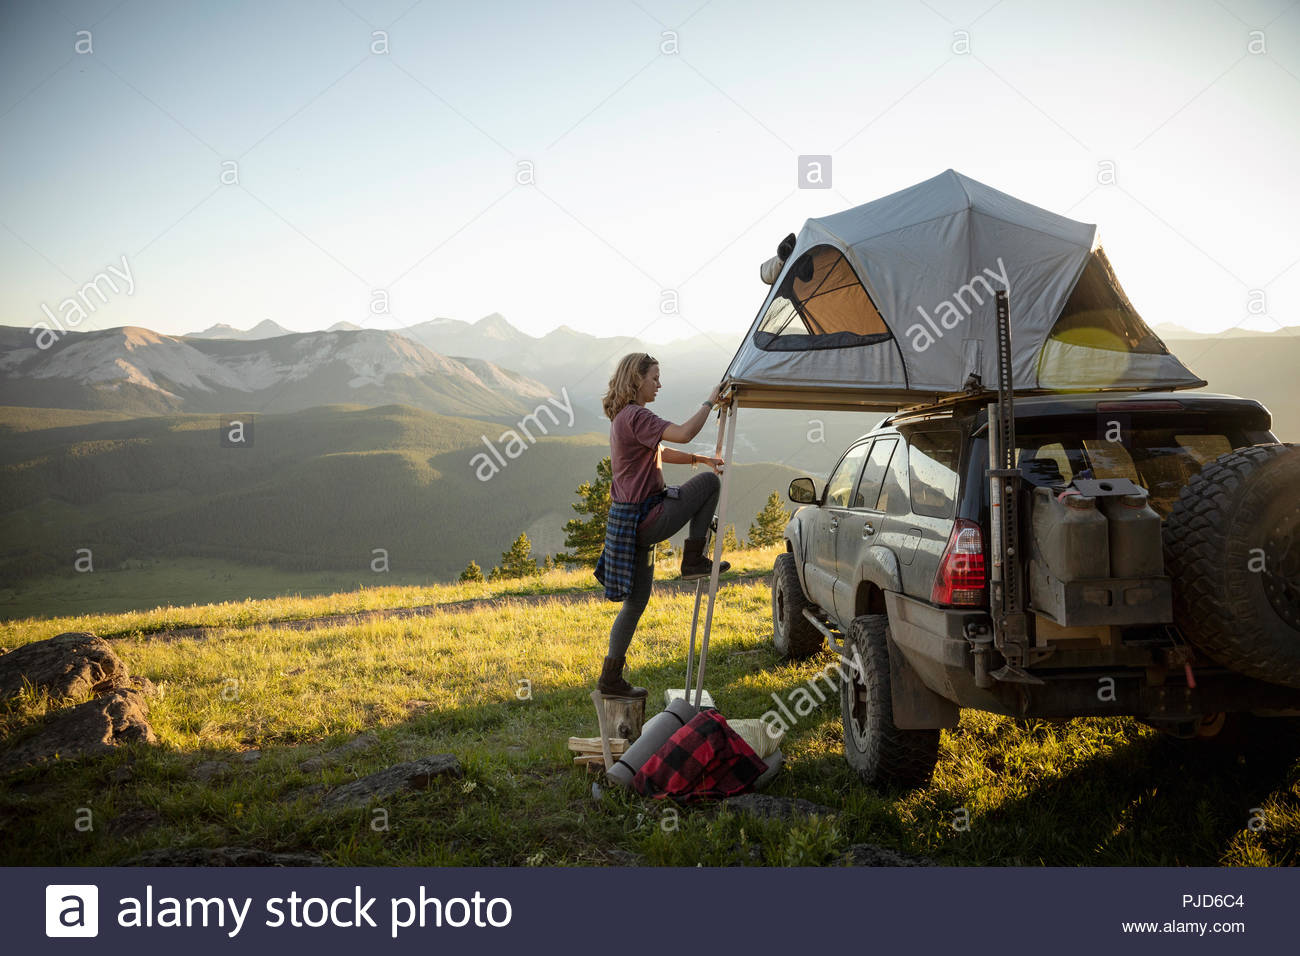 Woman camping, climbing up to SUV rooftop tent in idyllic mountain field, Alberta, Canada Stock Photo